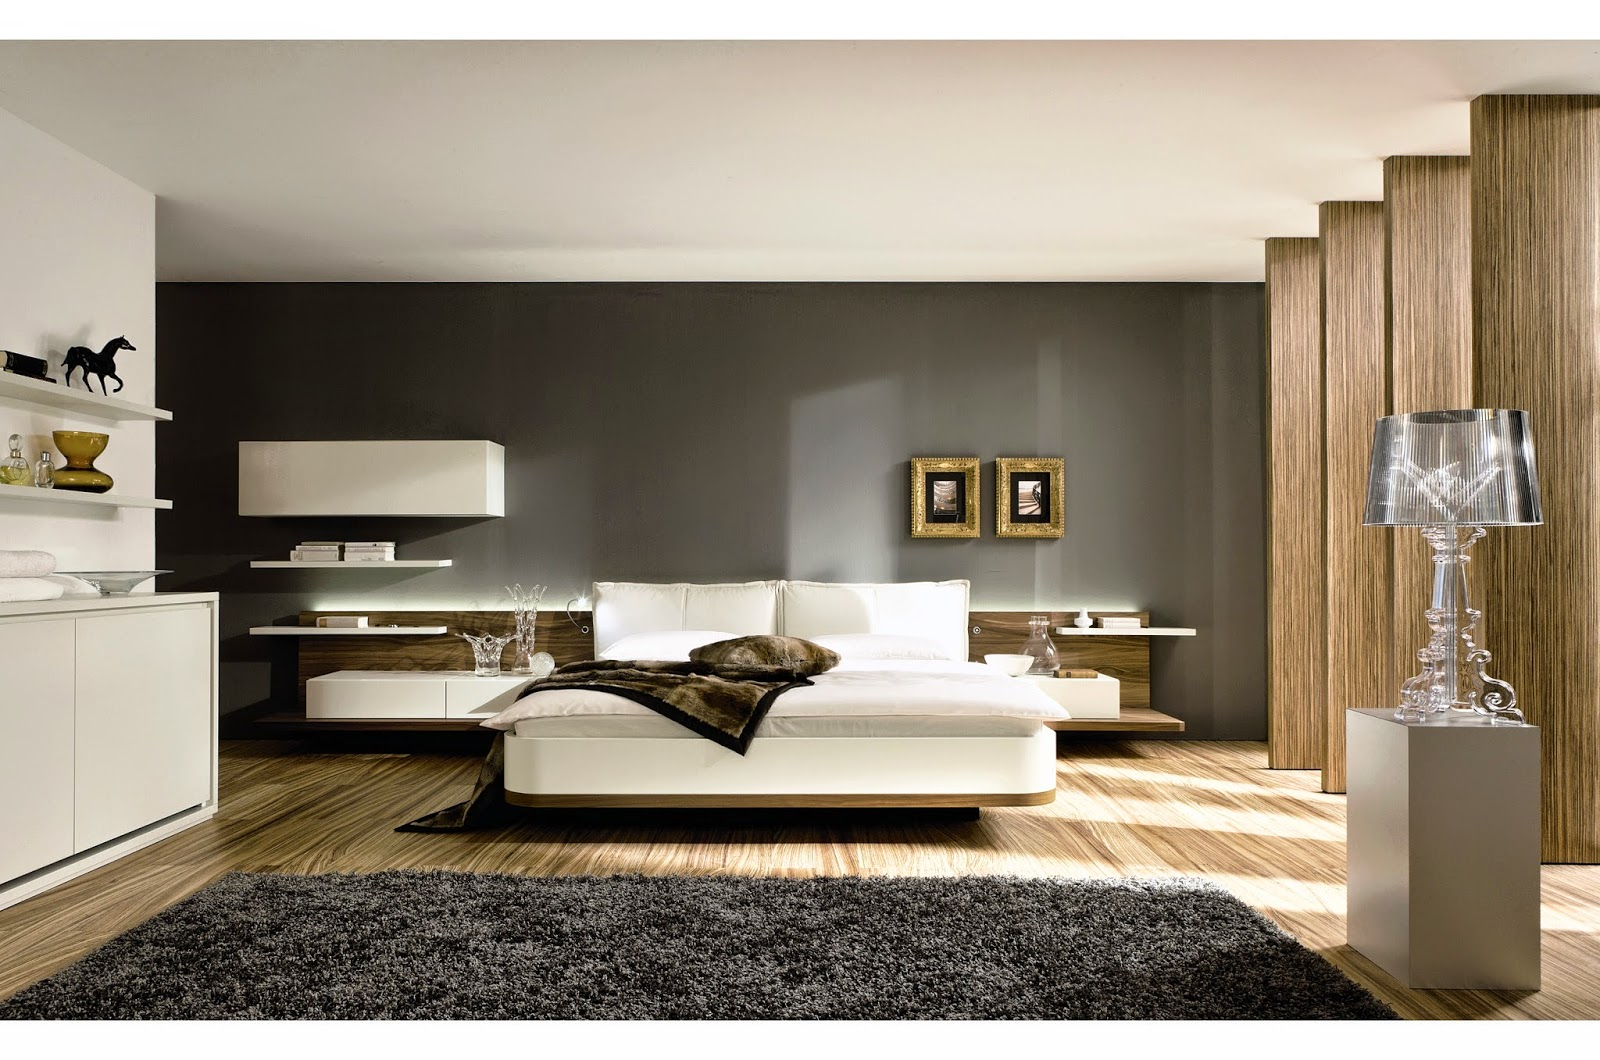 Ikea Bedroom Interior Design Eas